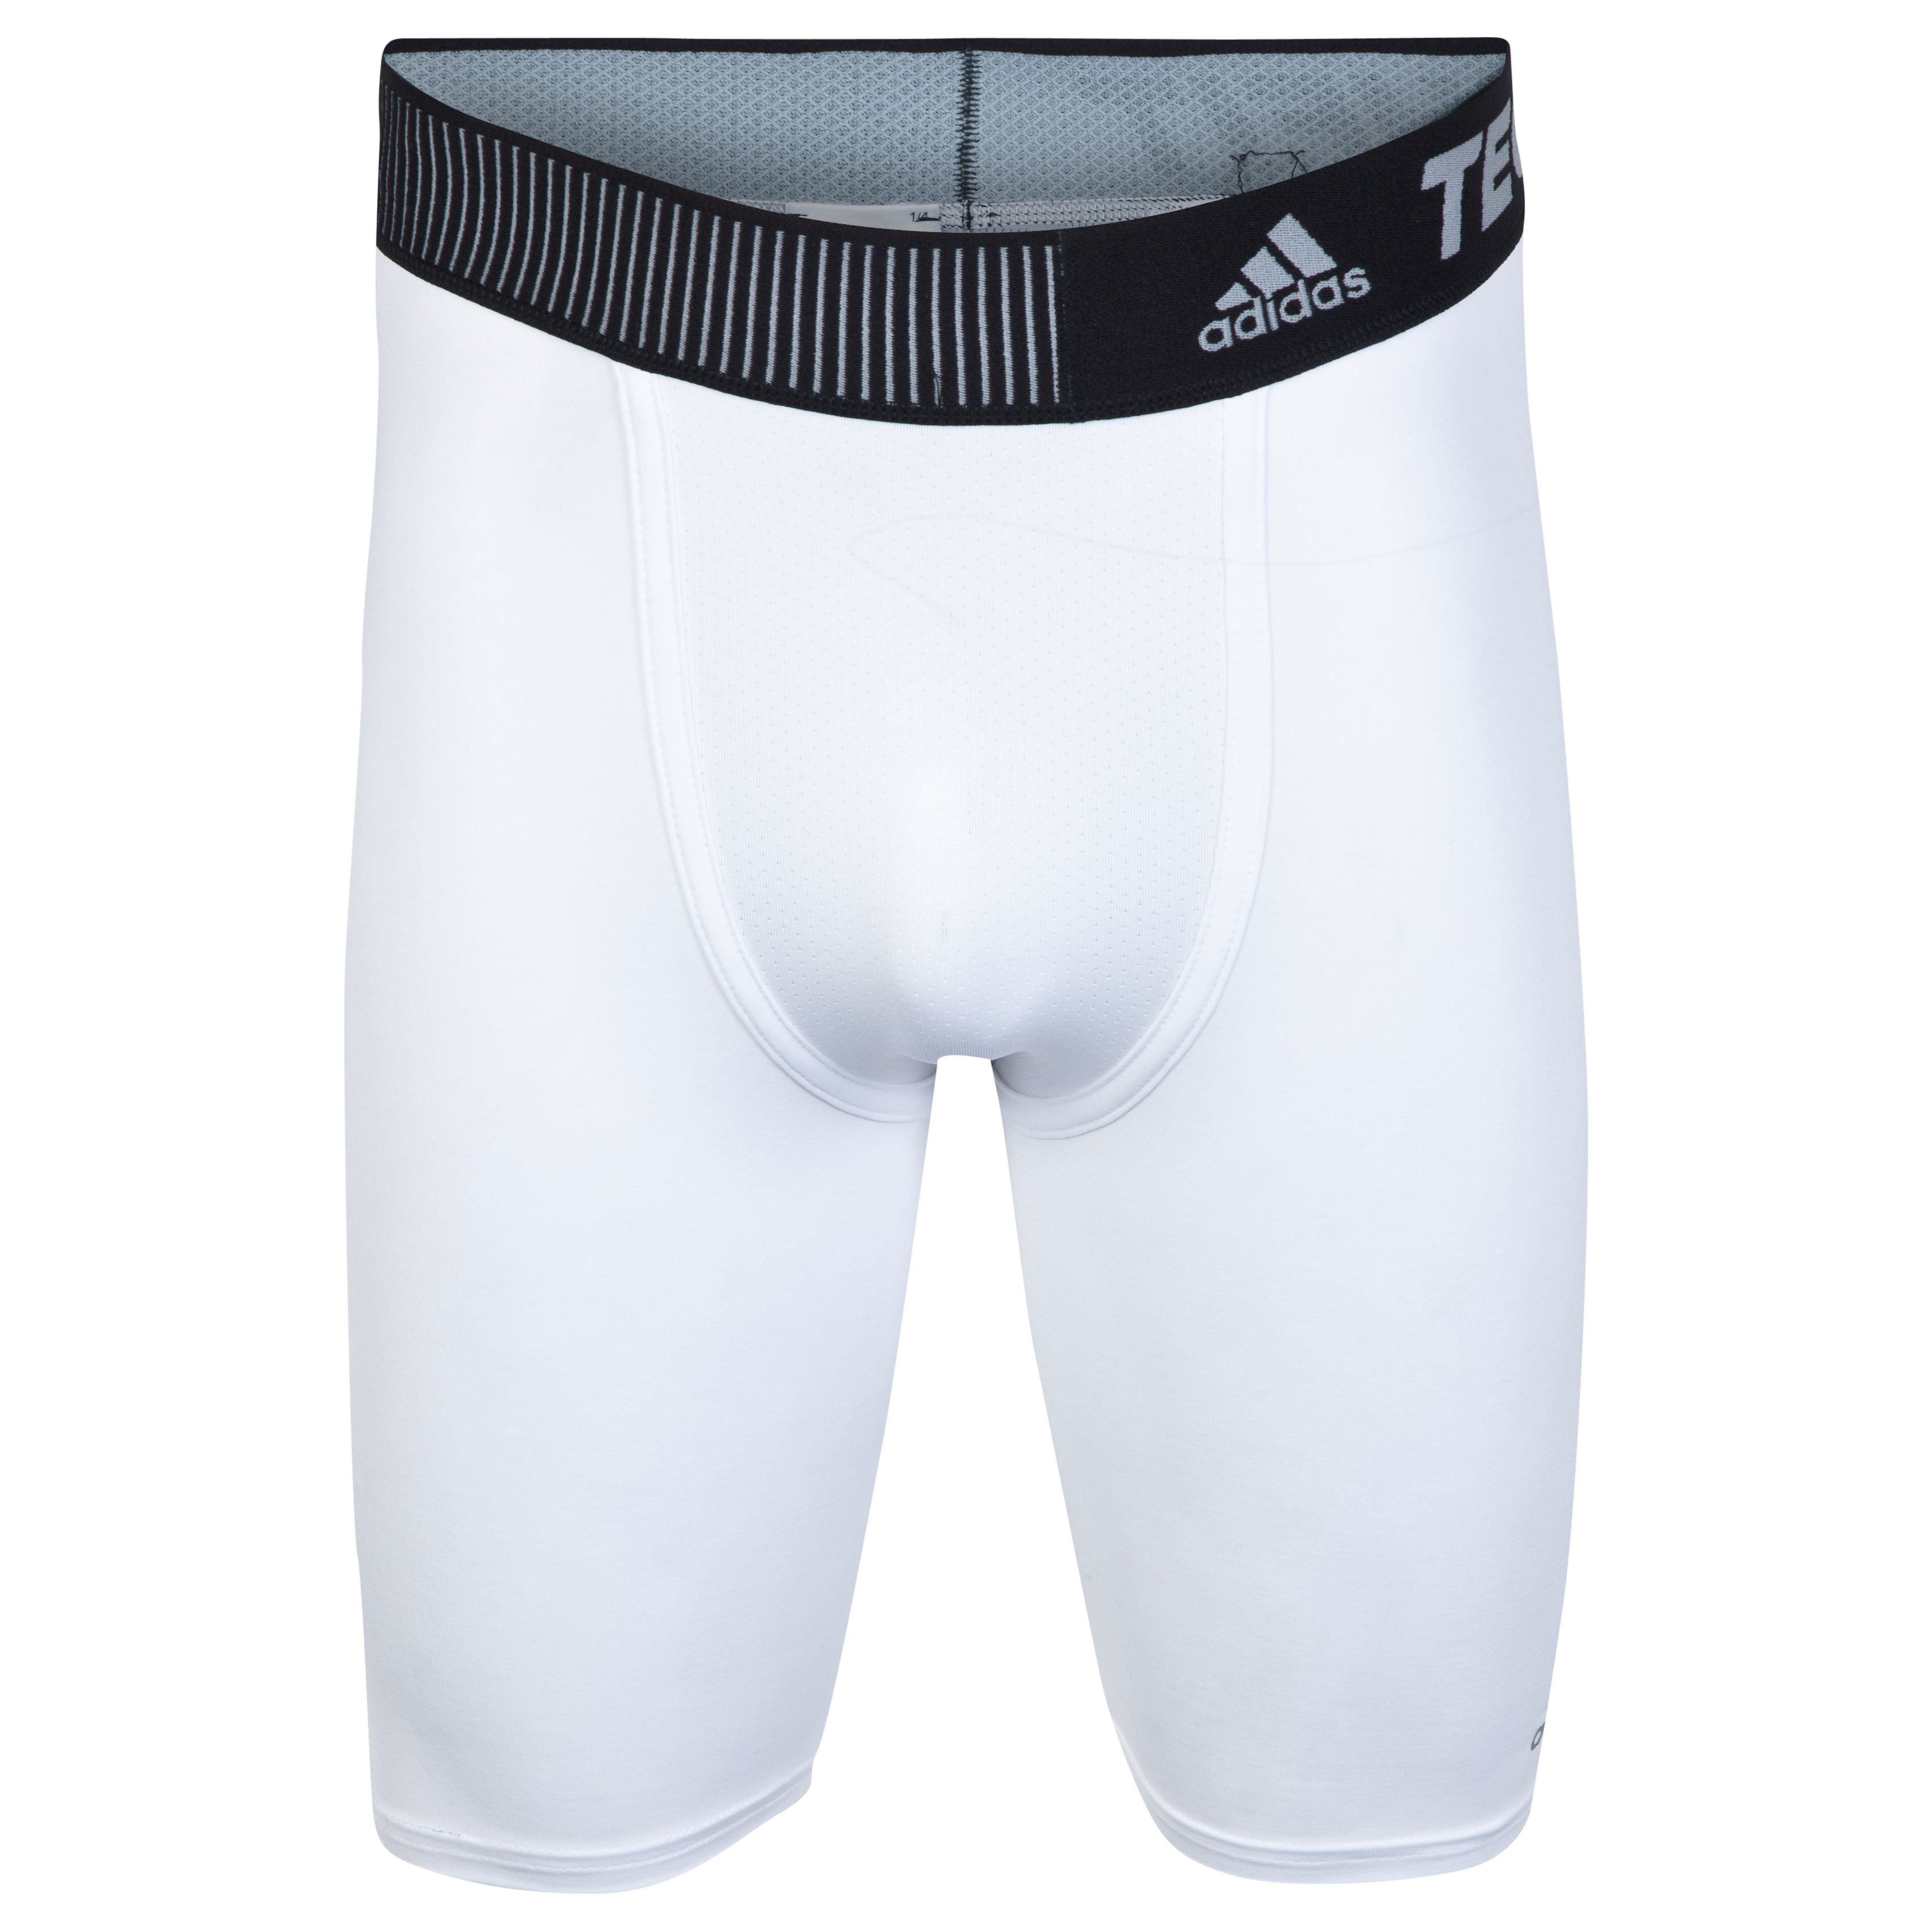 Adidas TechFit Cool Base Layer Shorts White